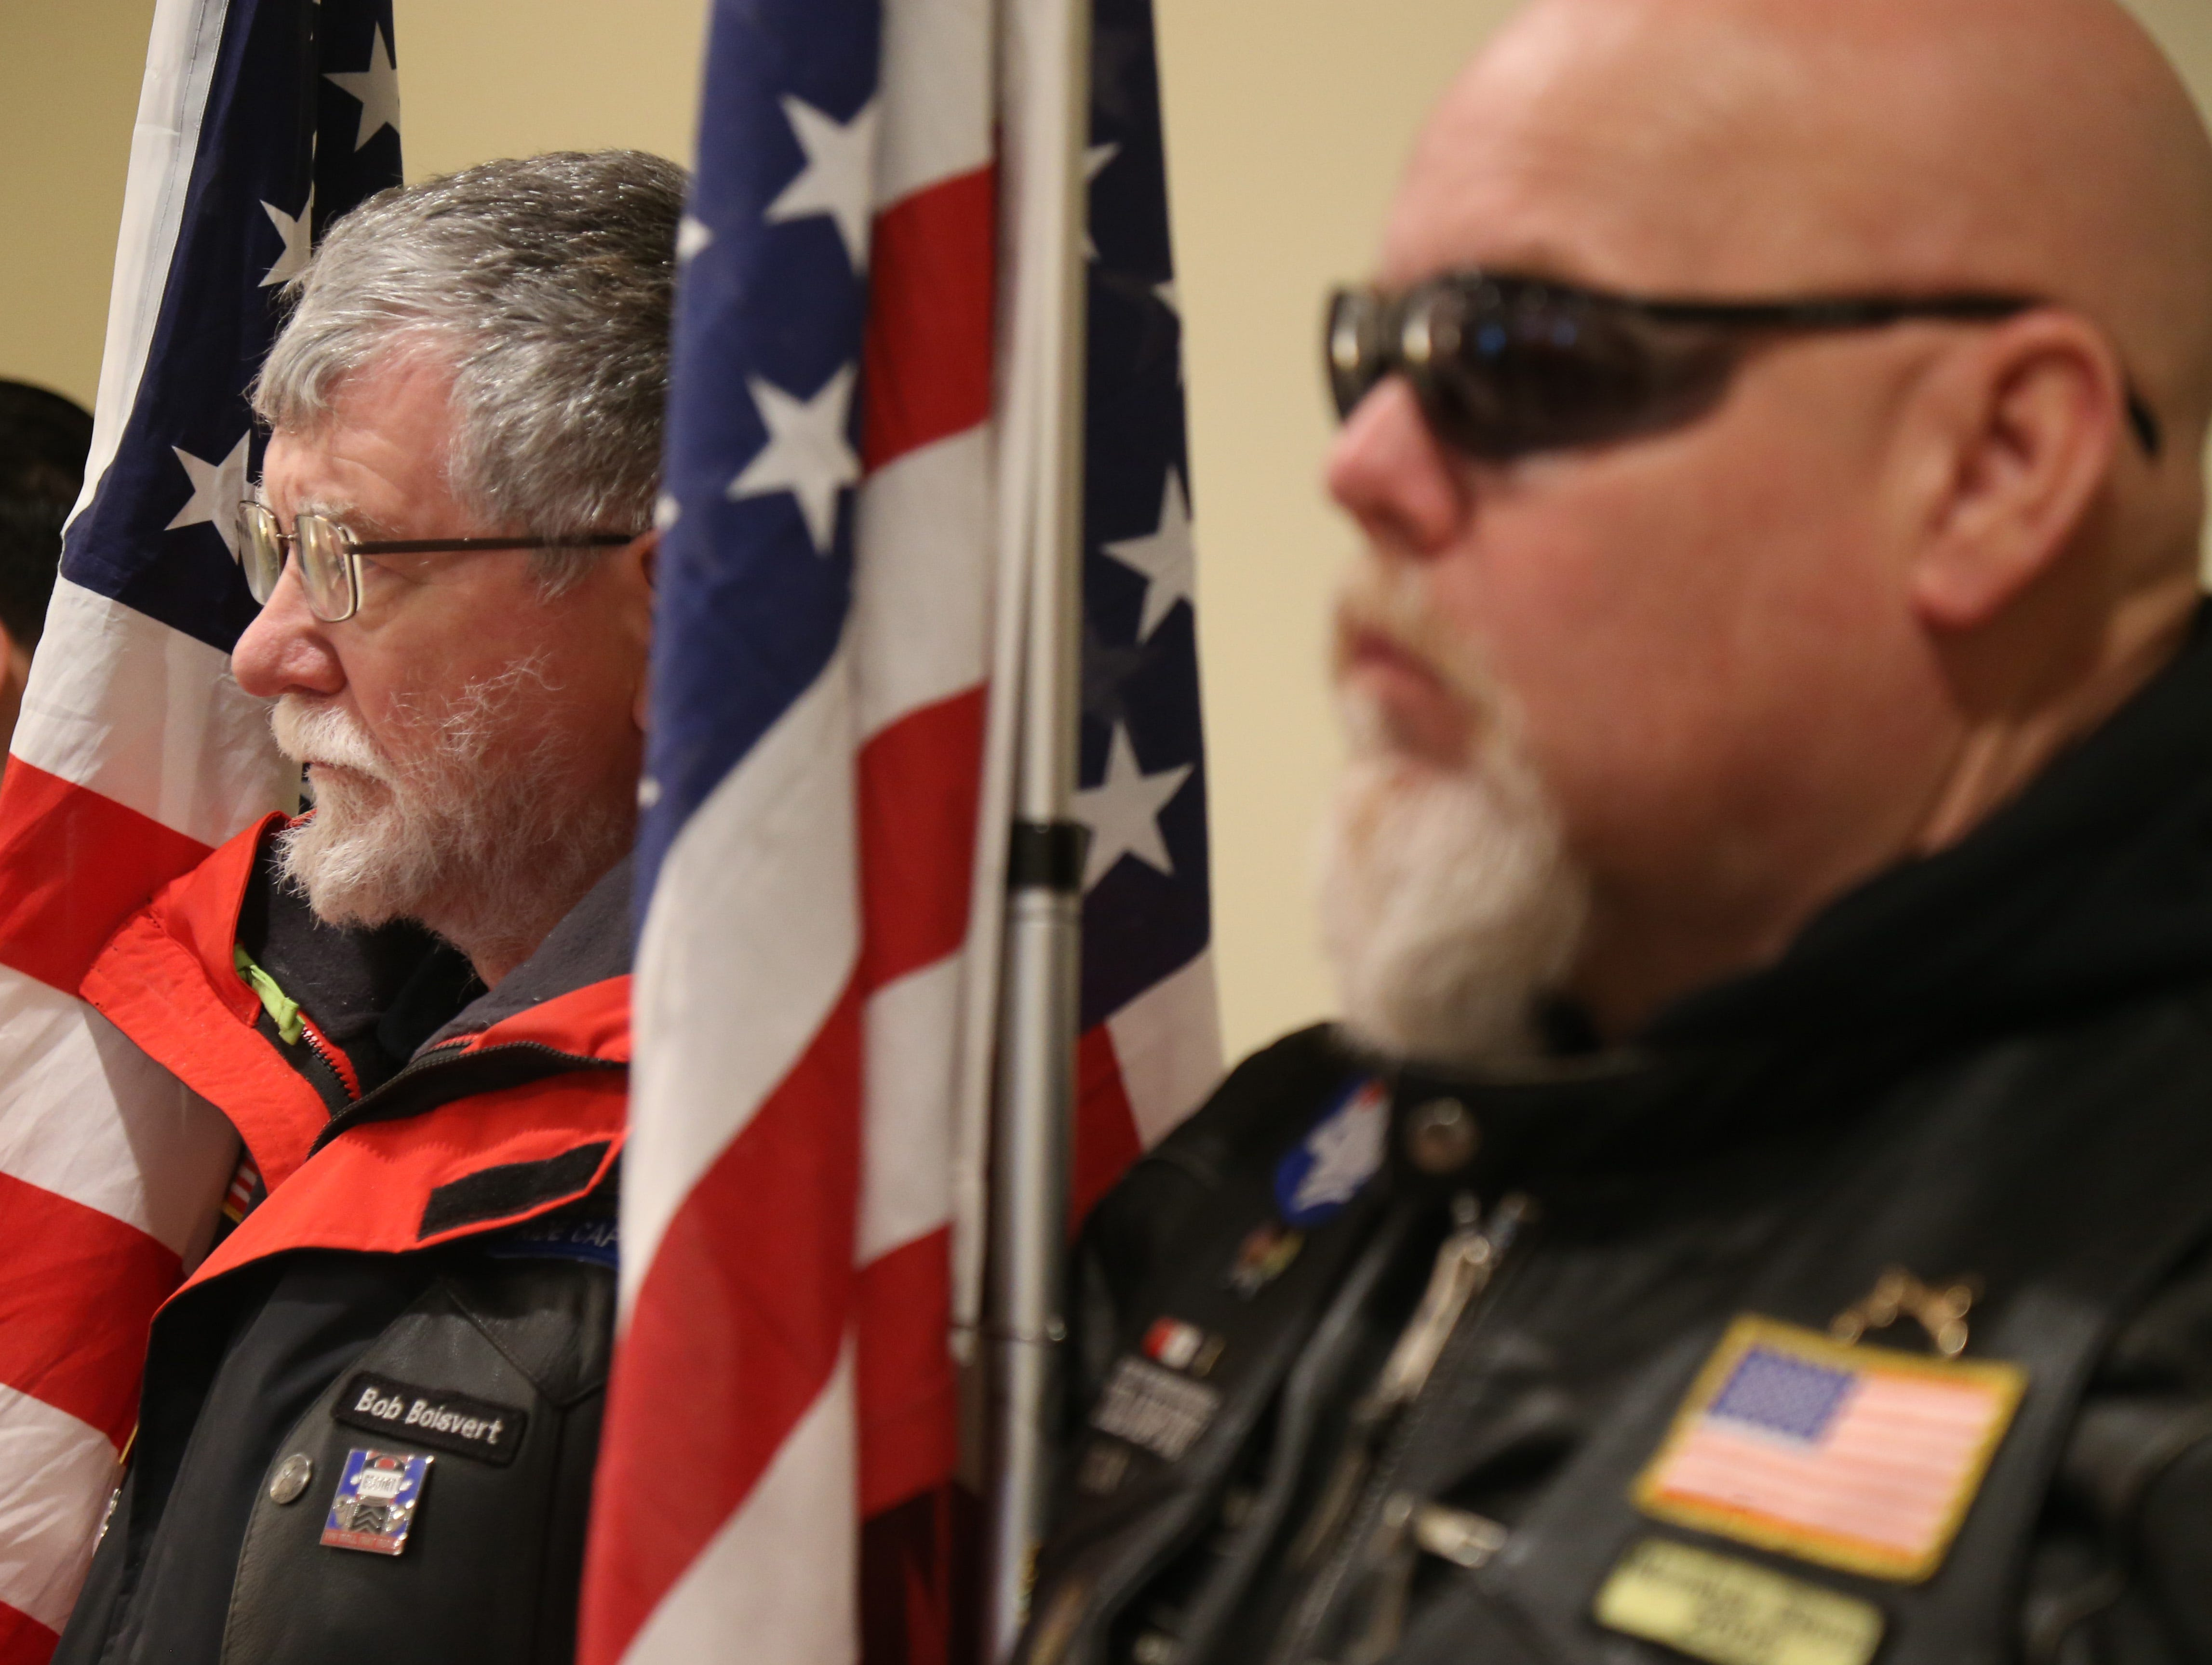 Patriot Guards, from left Bob Boisvert and Ken Titland stand in attendance of Thursday's memorial service for four veterans at Libby Funeral Home in Beacon on January 10, 2019. The Patriot Guard accompanied the cremains on their way to Calverton National Cemetery on Long Island.